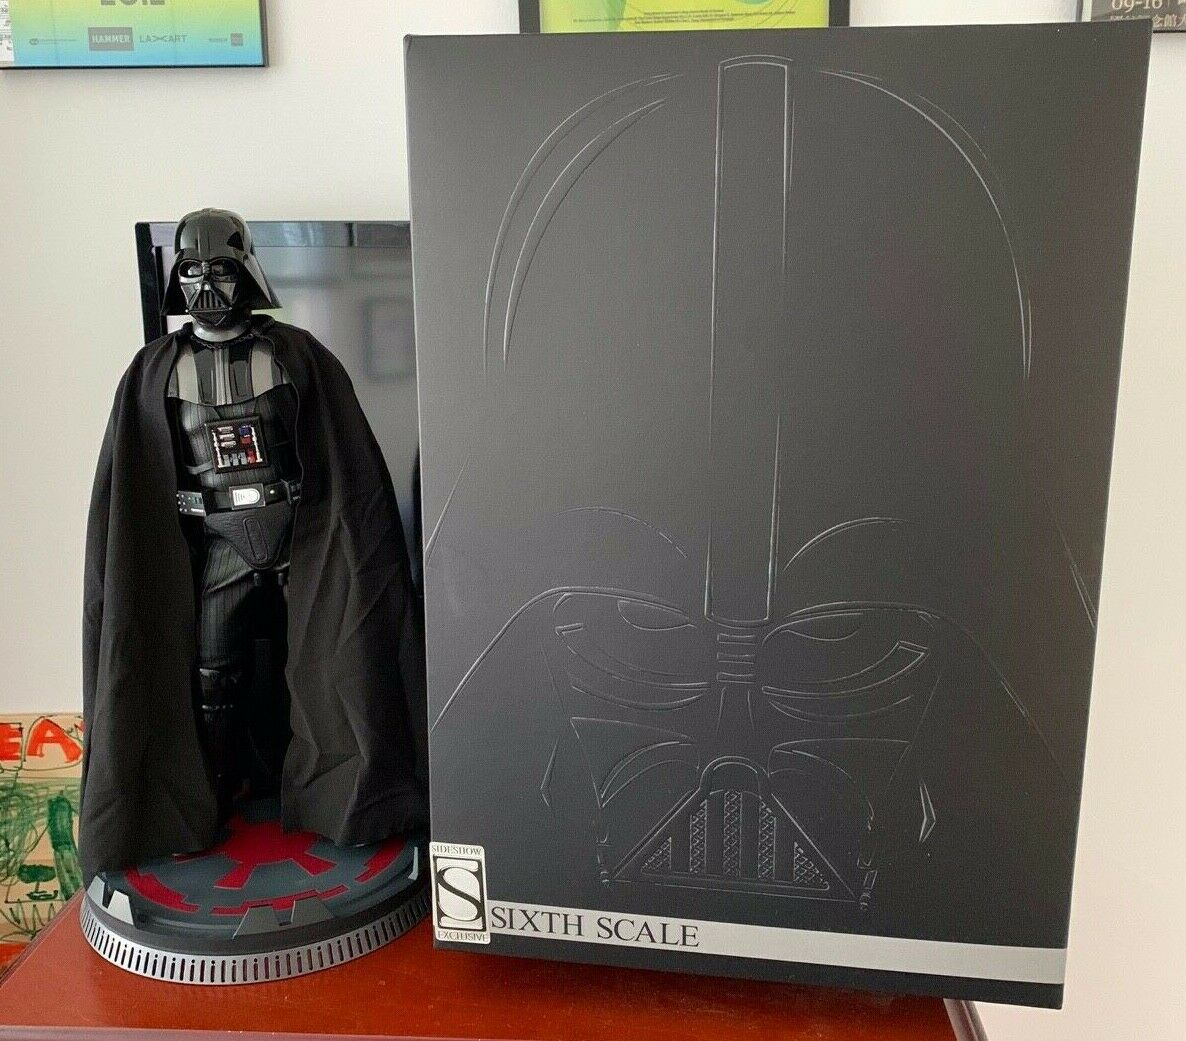 Sideshow Collectibles Darth Vader Deluxe (1/6) Sixth Scale Figure, Exclusive on eBay thumbnail